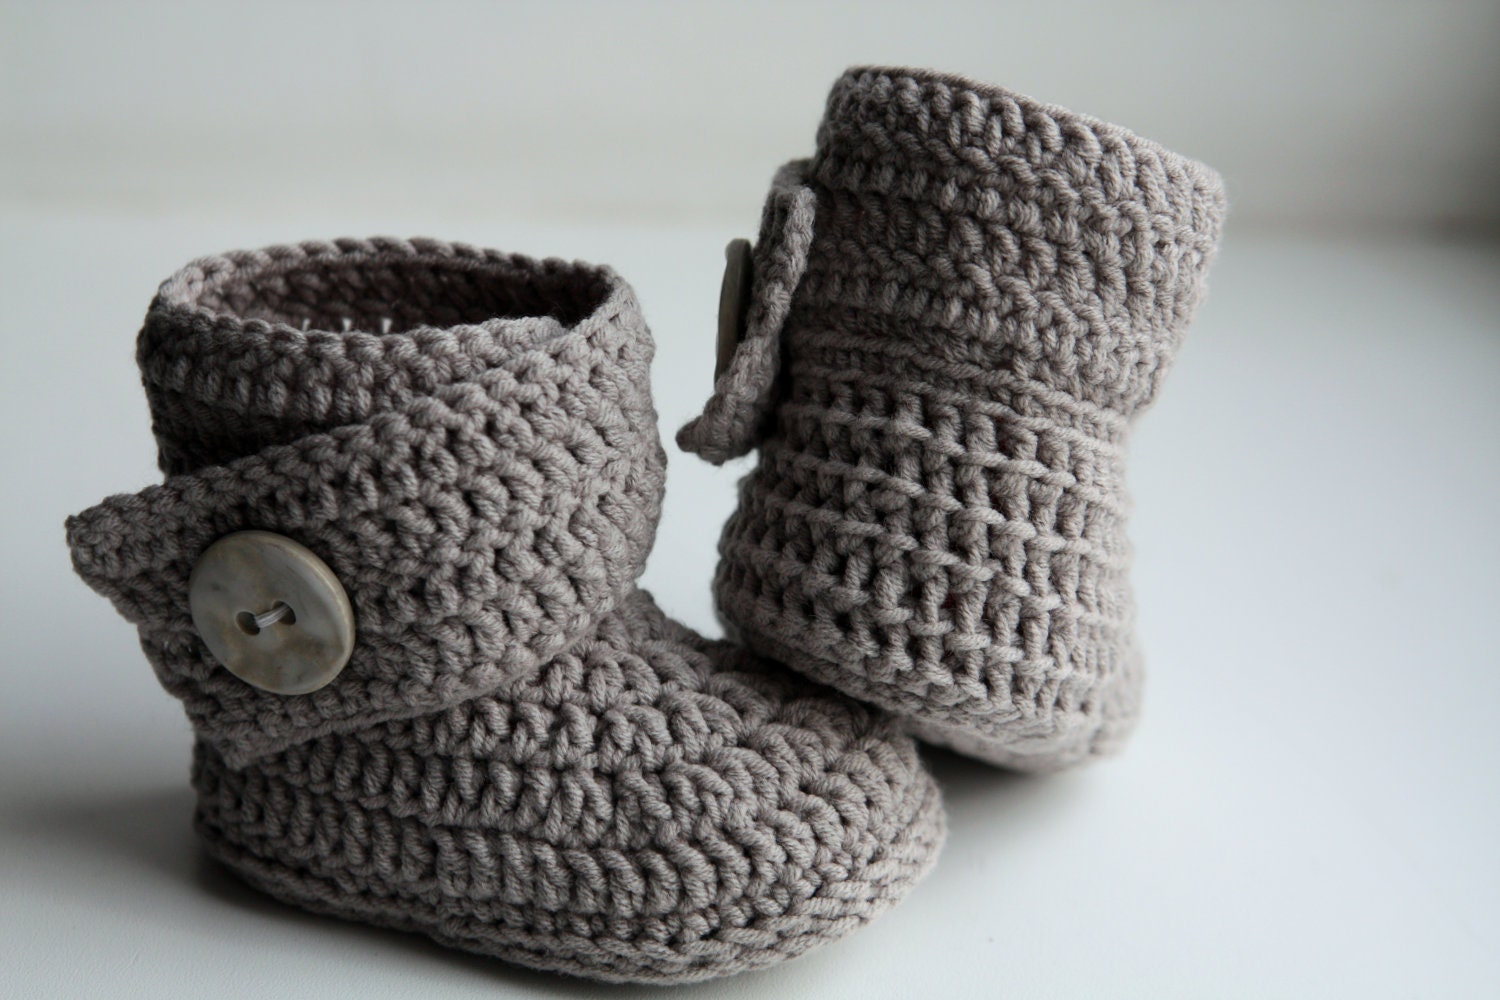 Free Crochet Pattern Baby Ugg Booties : Crochet ugg boot pattern. PDF. This is a PATTERN for crocheted